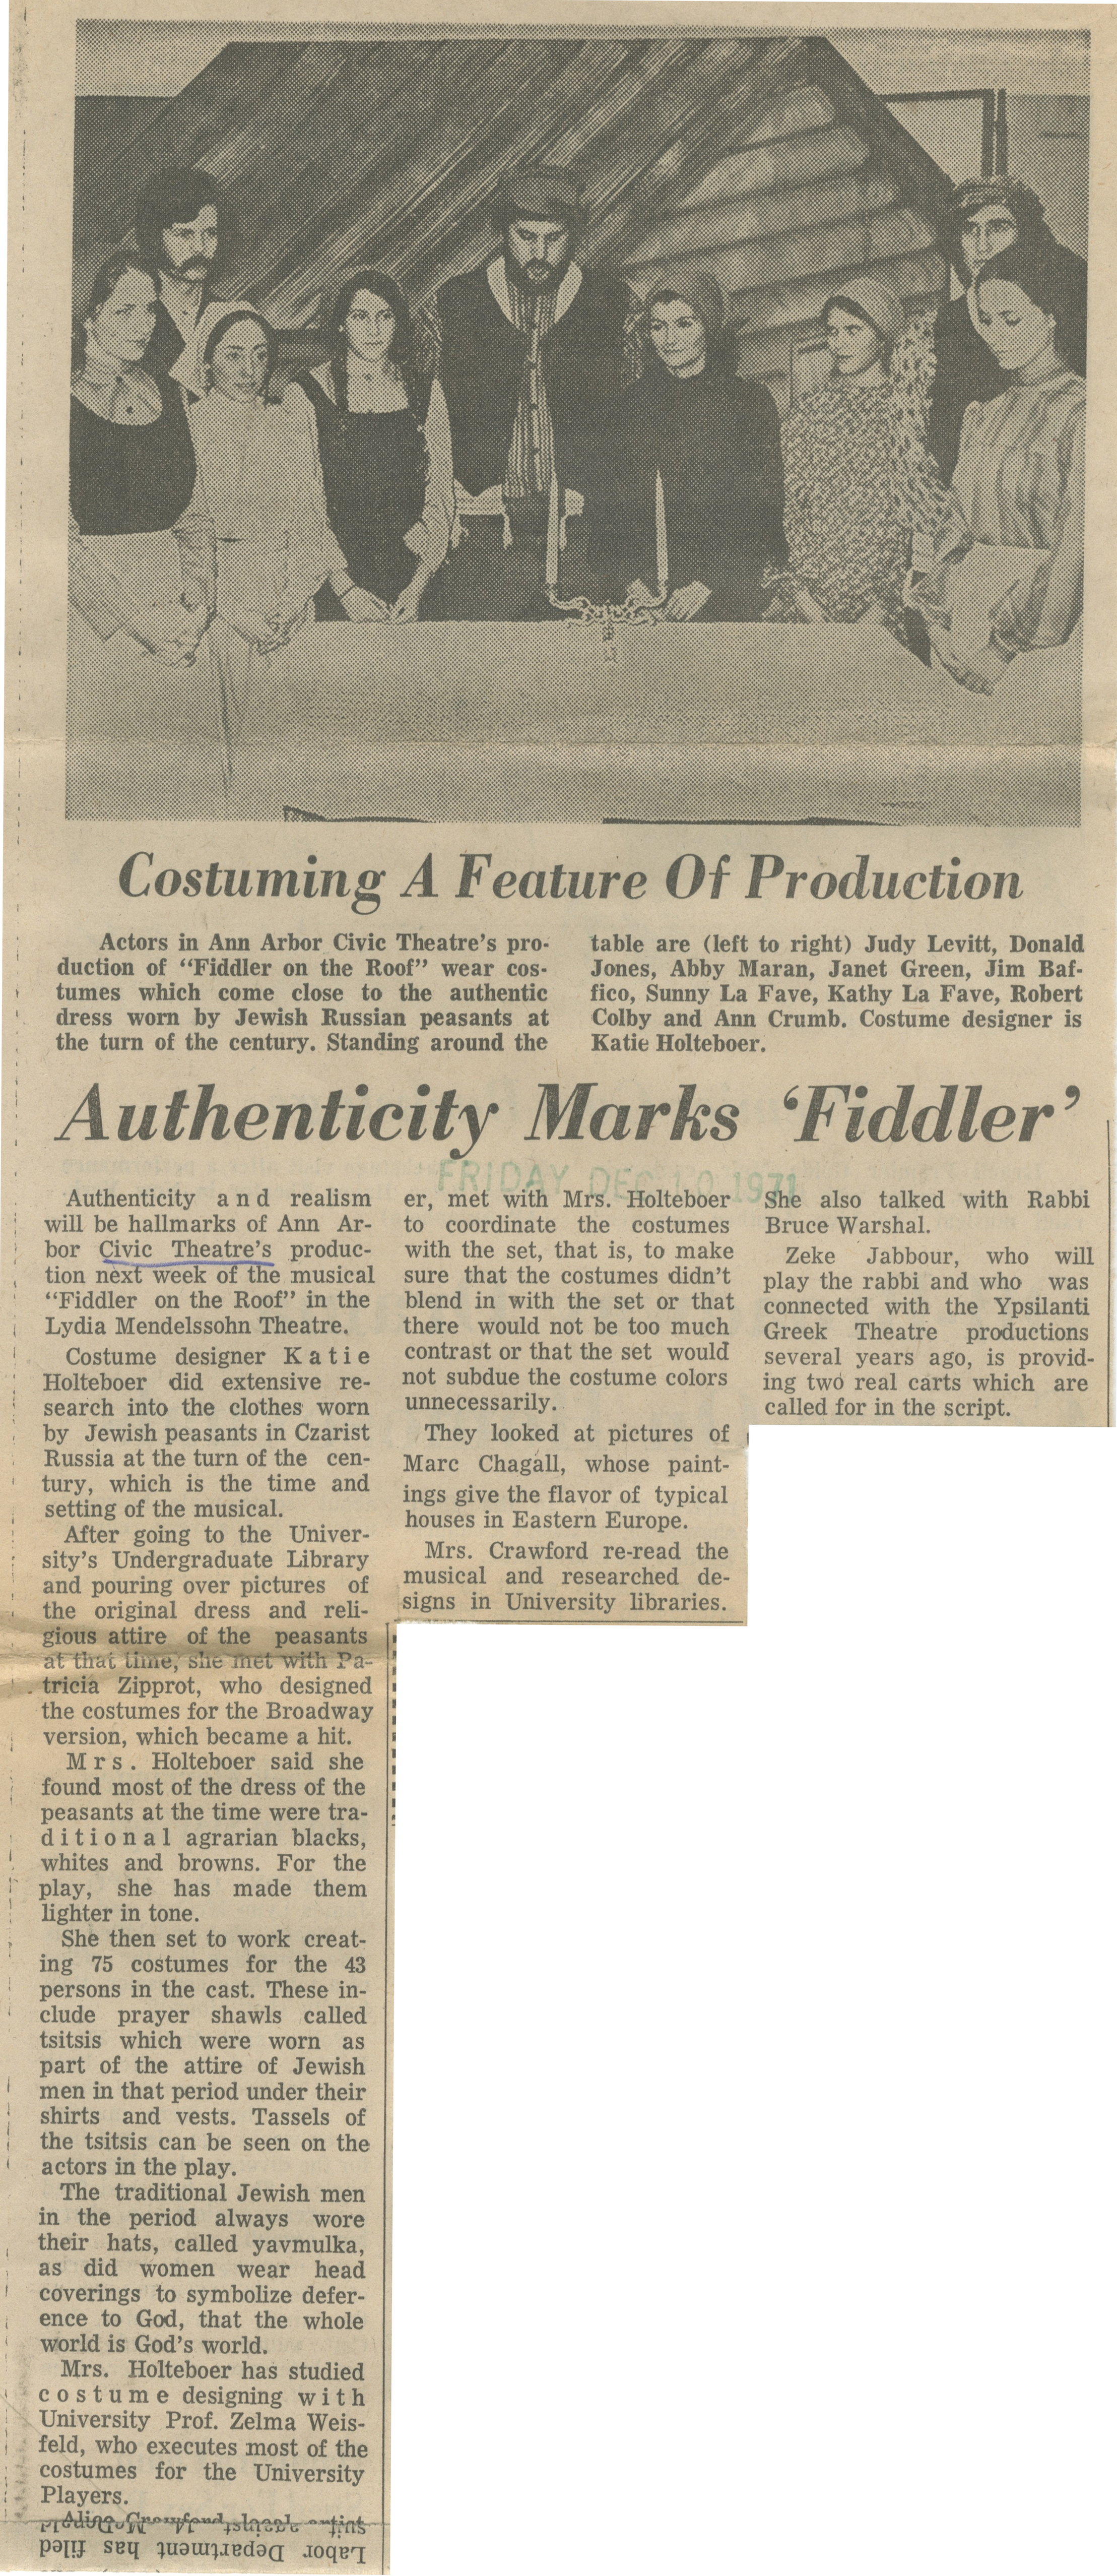 Authenticity Marks 'Fiddler' image